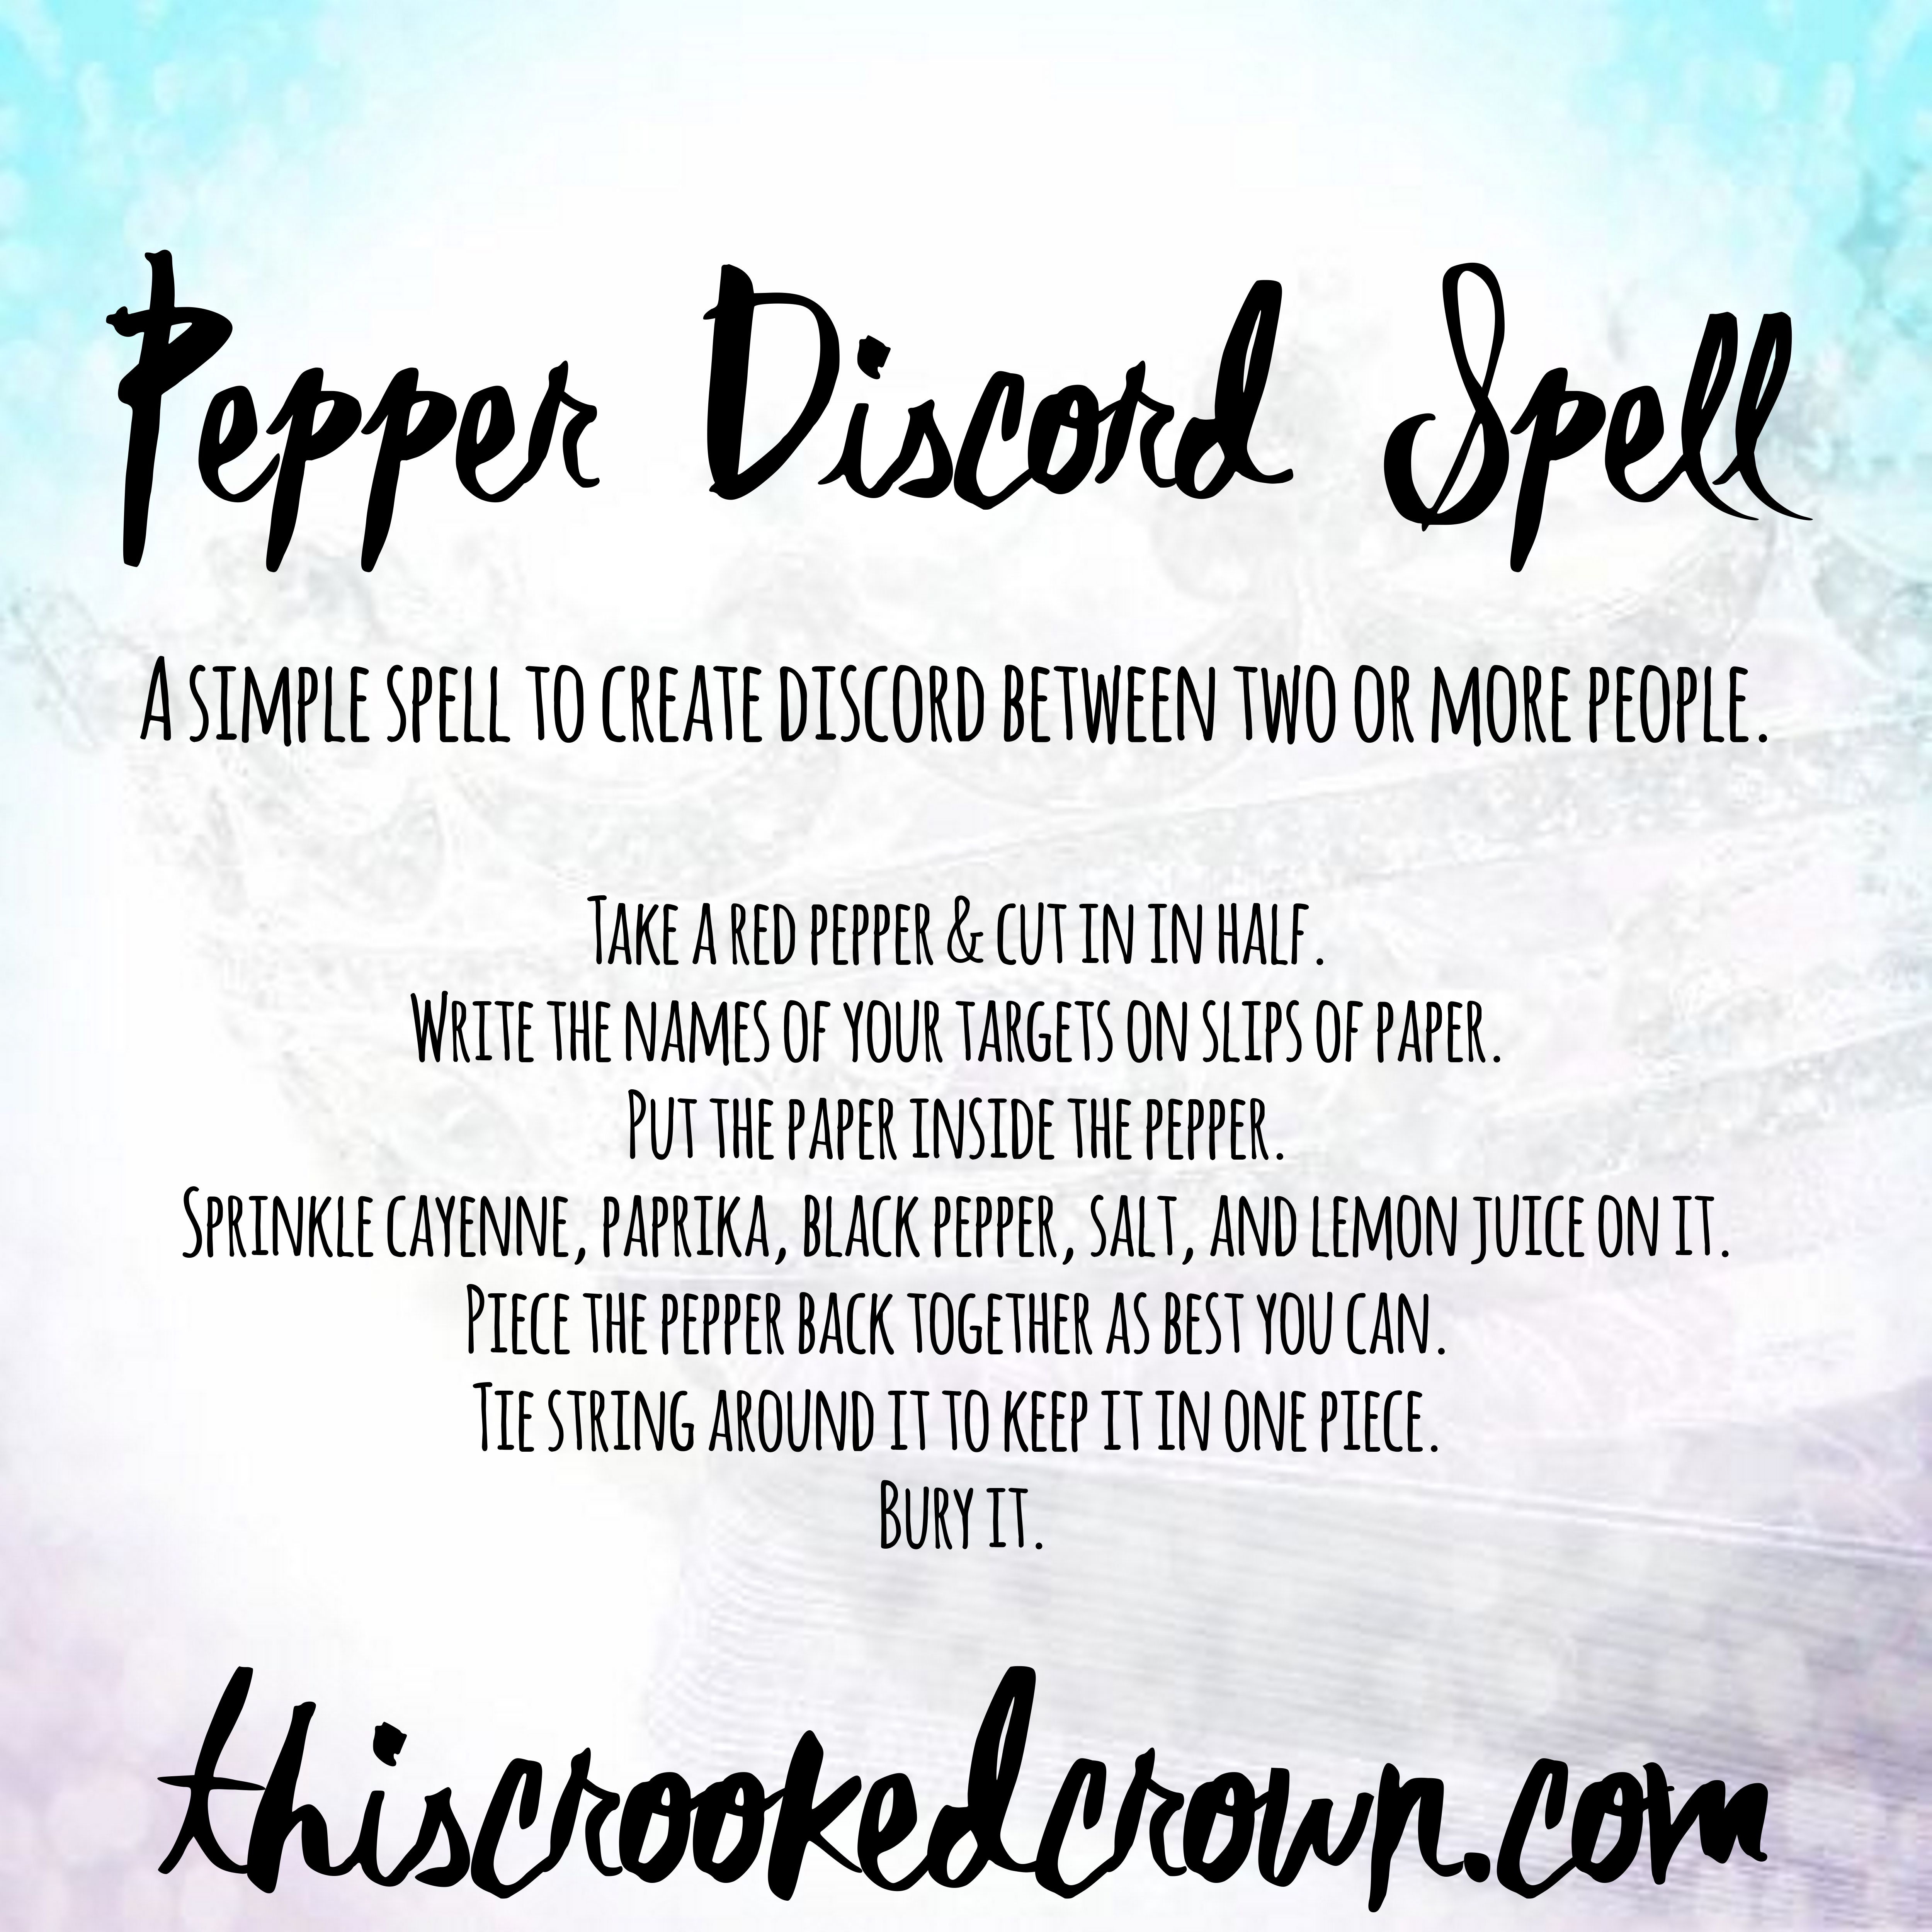 Pepper Discord Spell [Spell Saturday #71] – This Crooked Crown